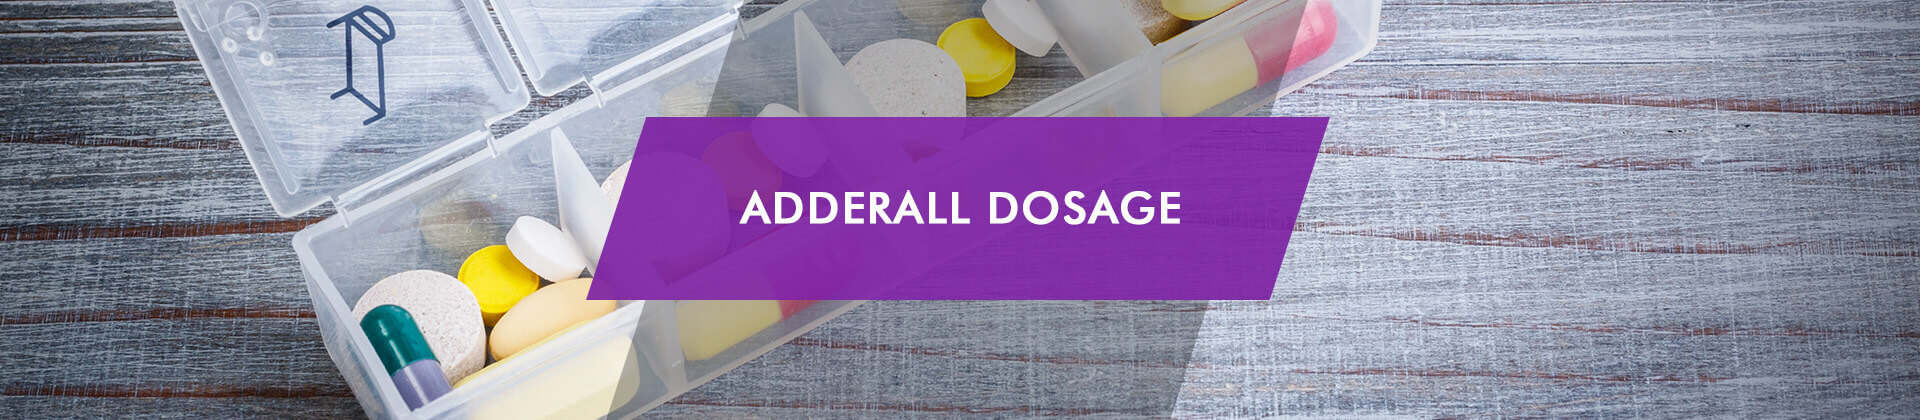 Dosage of Adderall pill dispenser